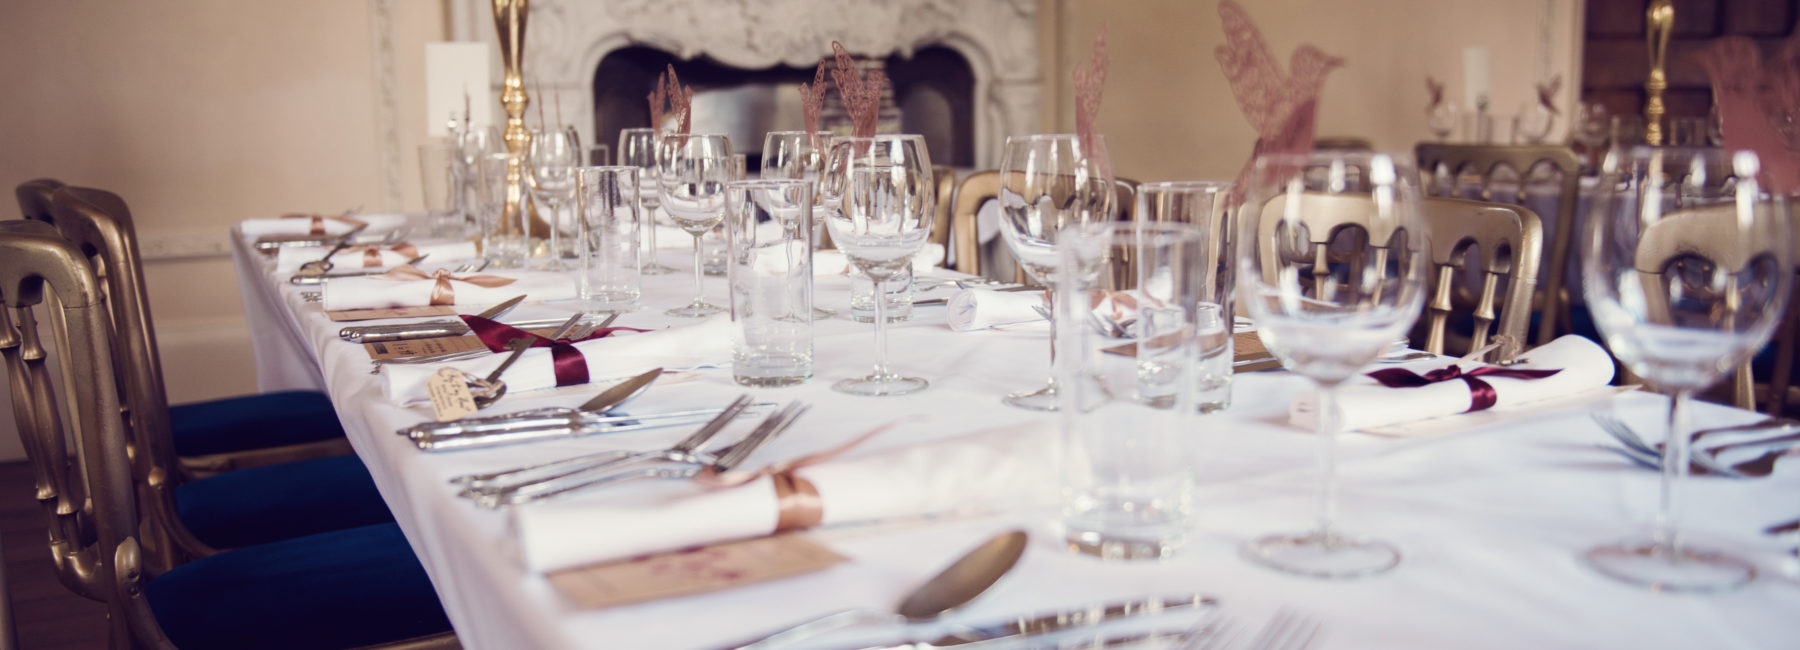 A long table, laid out with glasses and cutlery